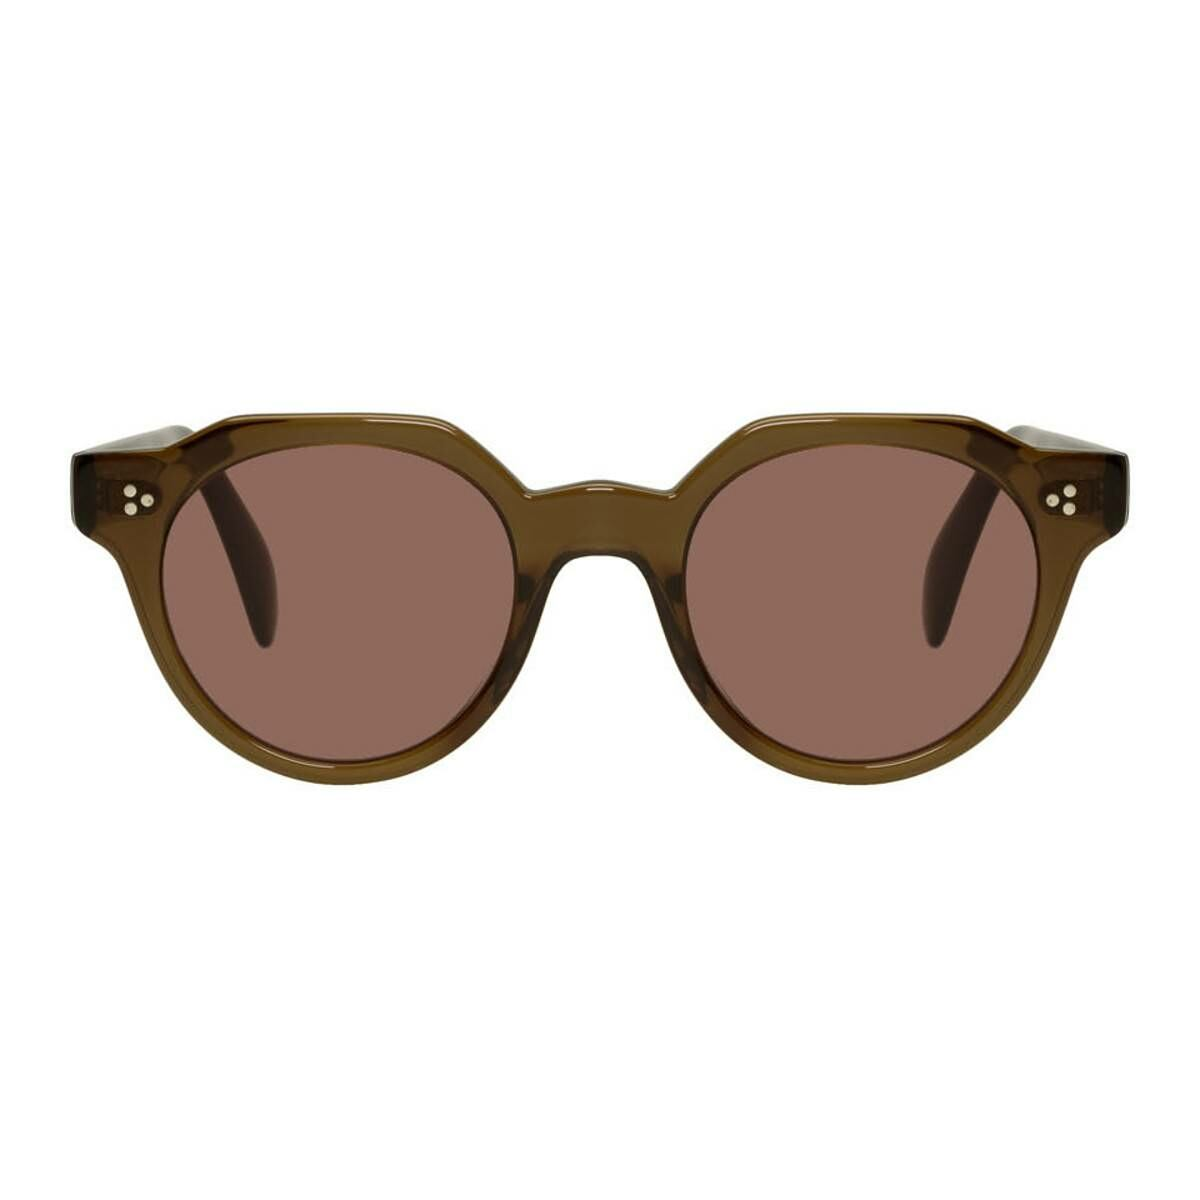 Oliver Peoples Brown and Red Irven Sunglasses Ssense USA MEN Men ACCESSORIES Mens SUNGLASSES